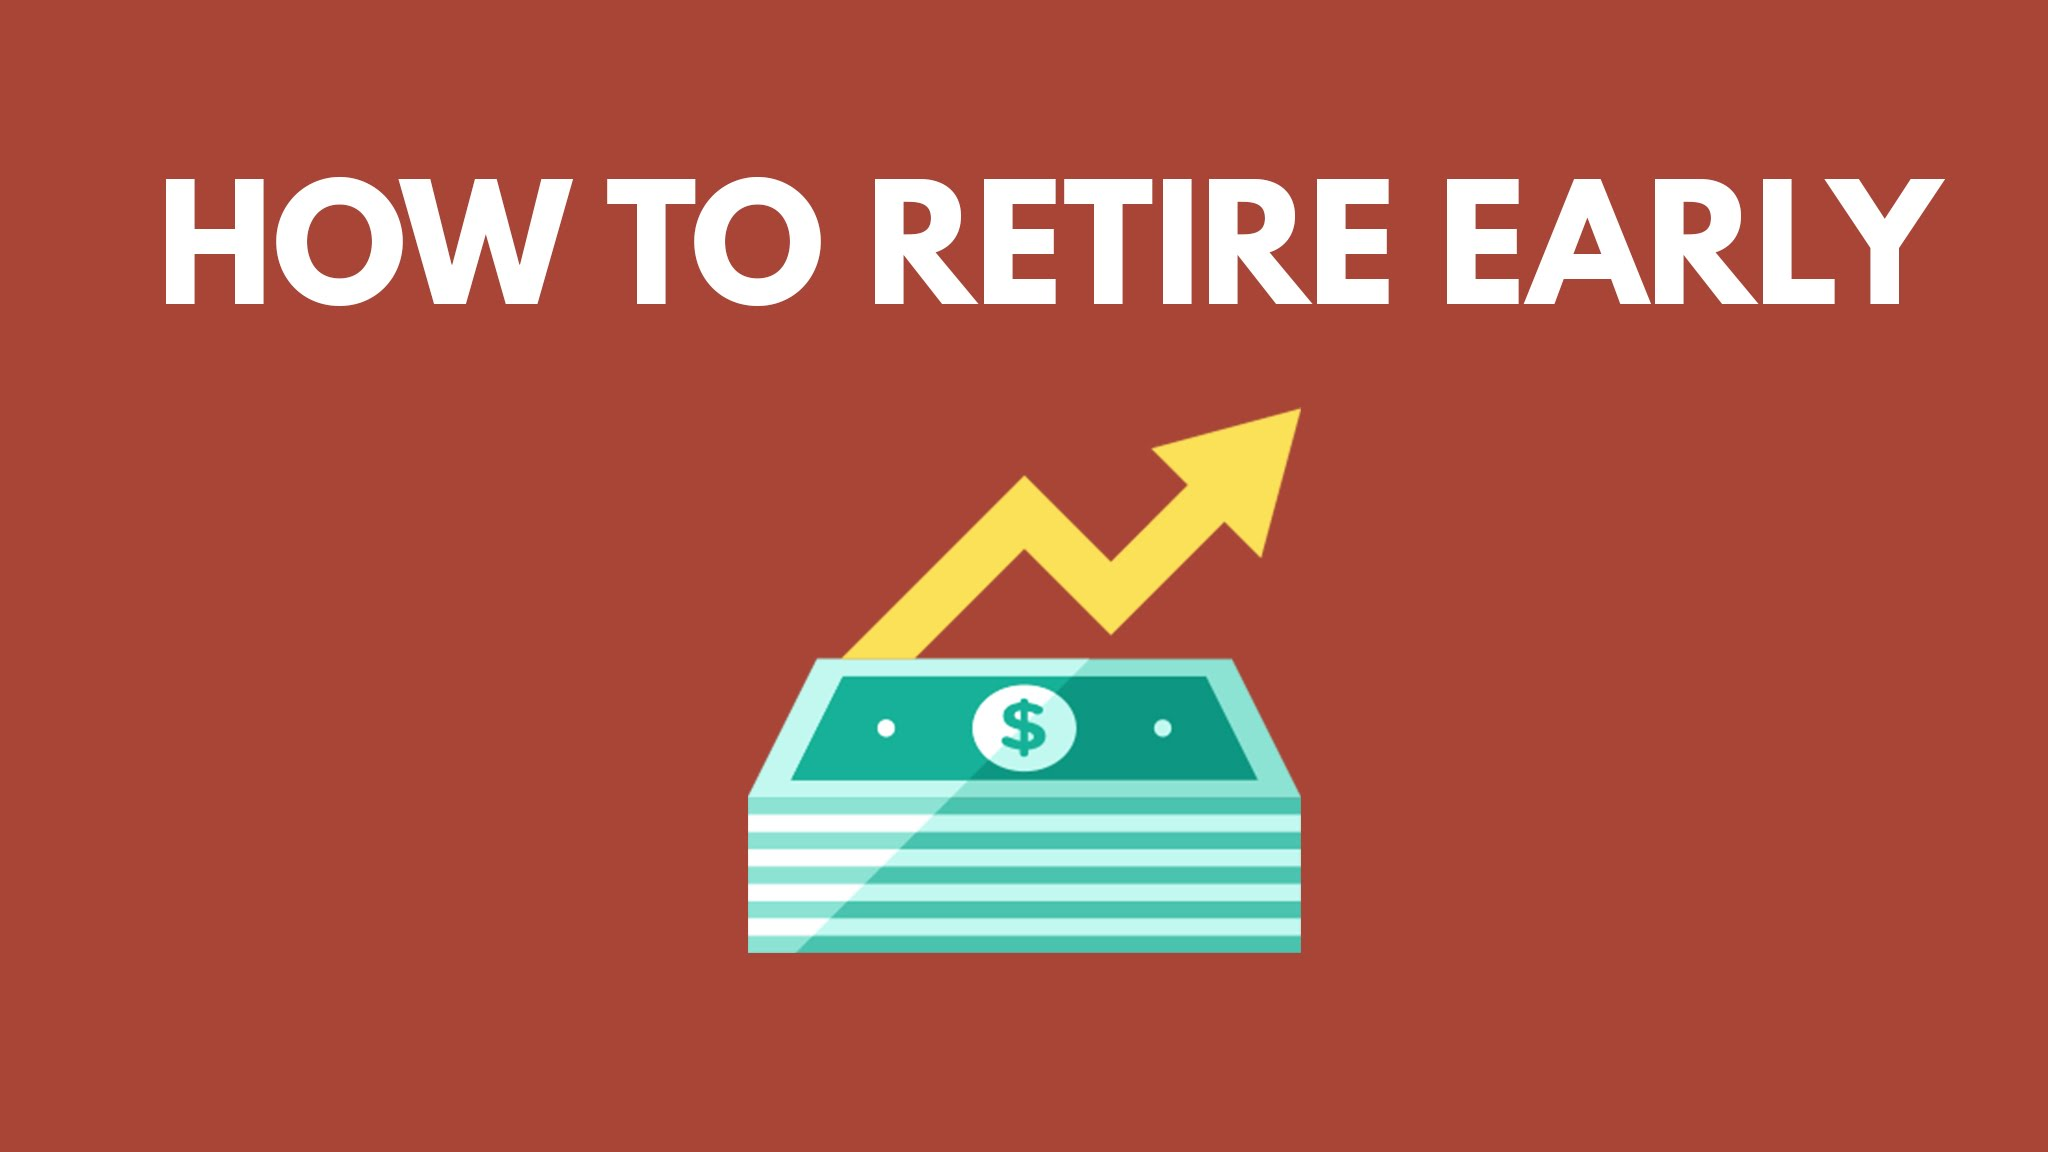 Retire Early On Over $5,000 A Month For A Once Only $197 – No Selling Or Recruiting Needed!